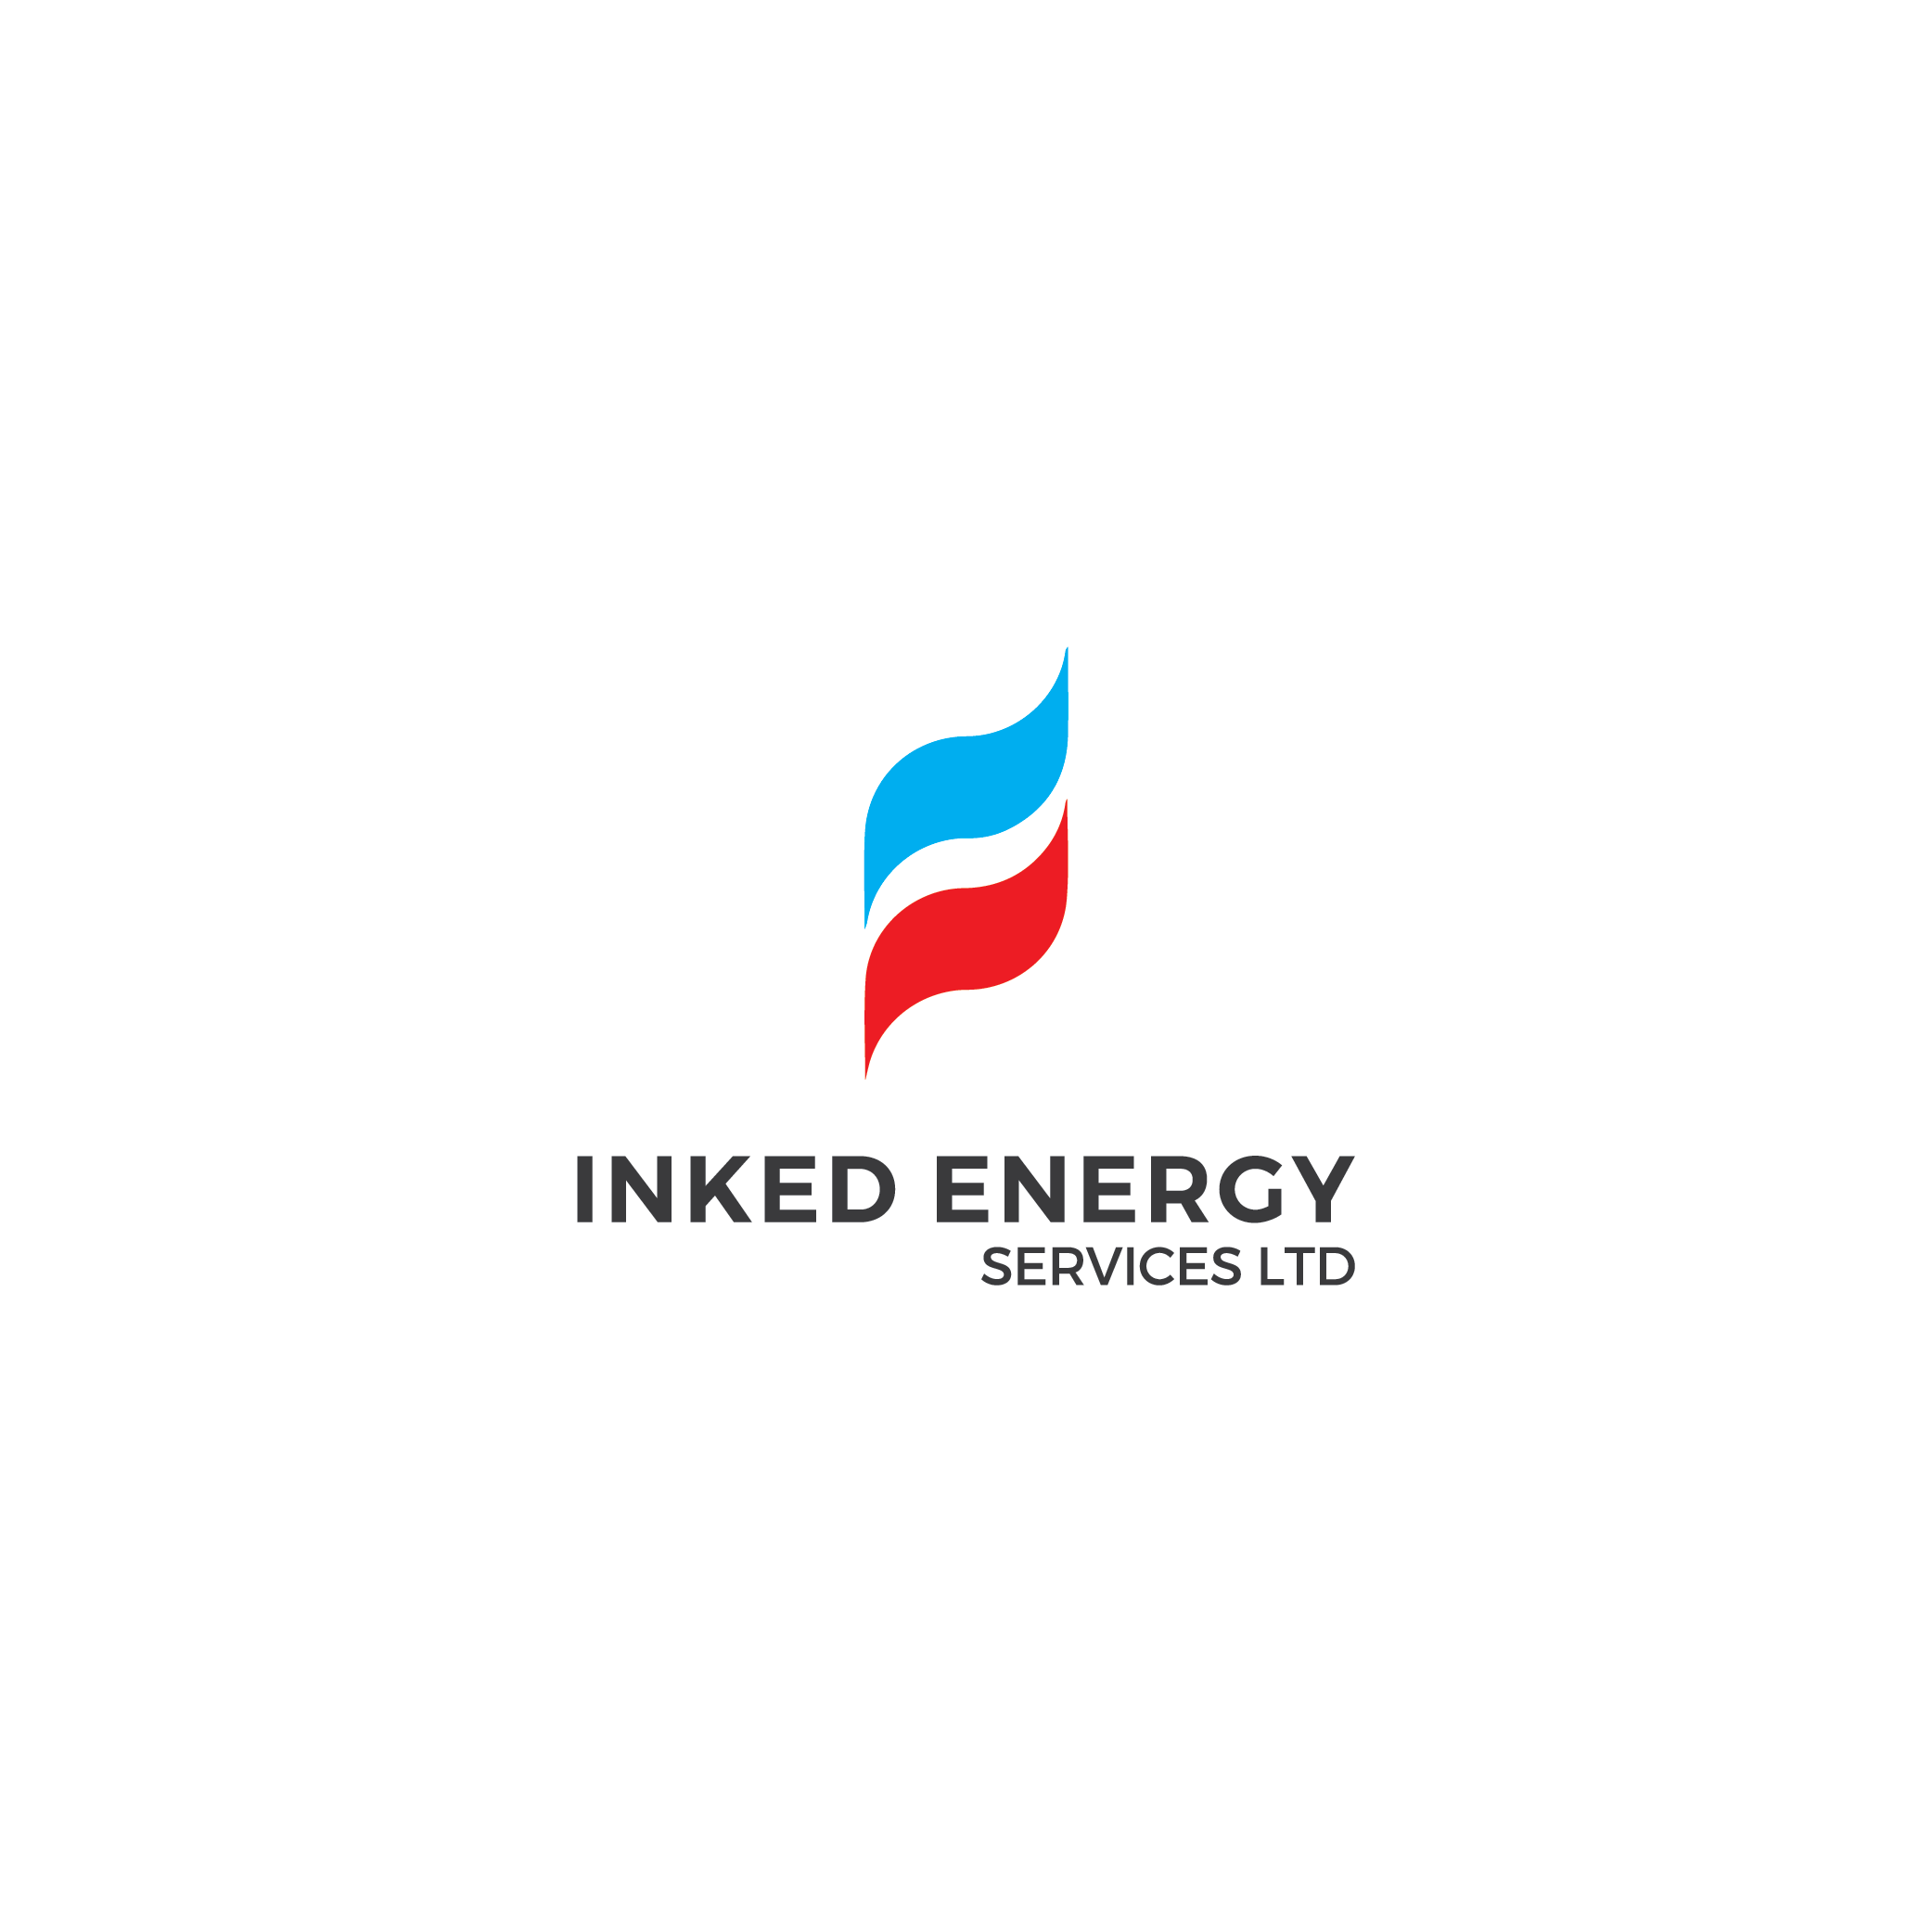 Logo Design by 354studio - Entry No. 154 in the Logo Design Contest Creative Logo Design for INKED ENERGY SERVICES LTD.